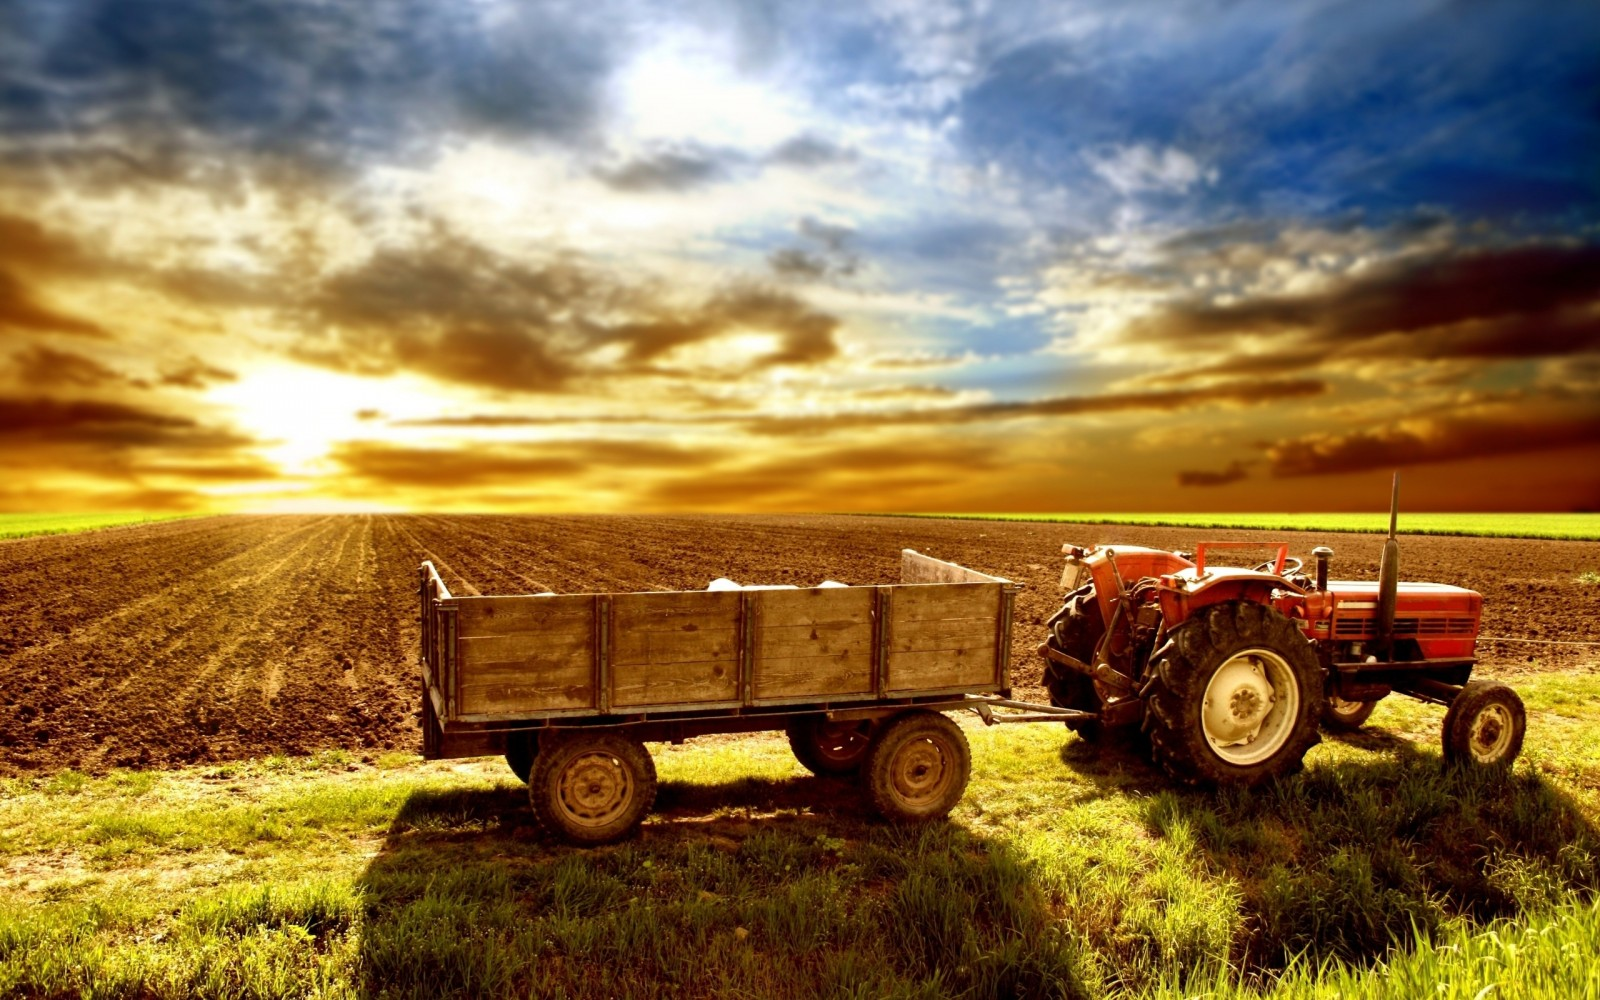 tractor_field_arable_land_agriculture-1099292.jpg!d